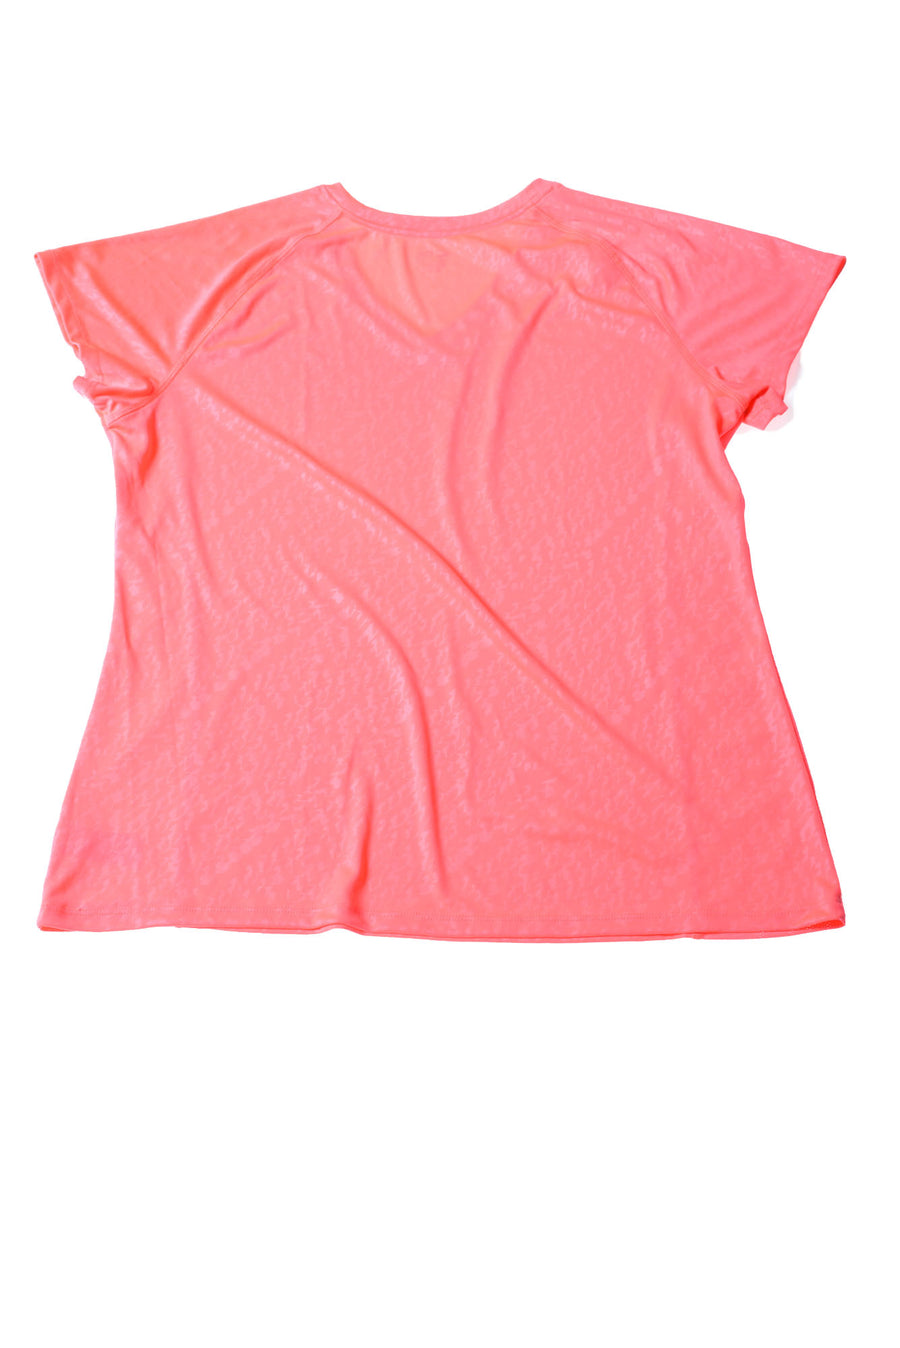 USED Champion Women's Top 2X-Large Pink